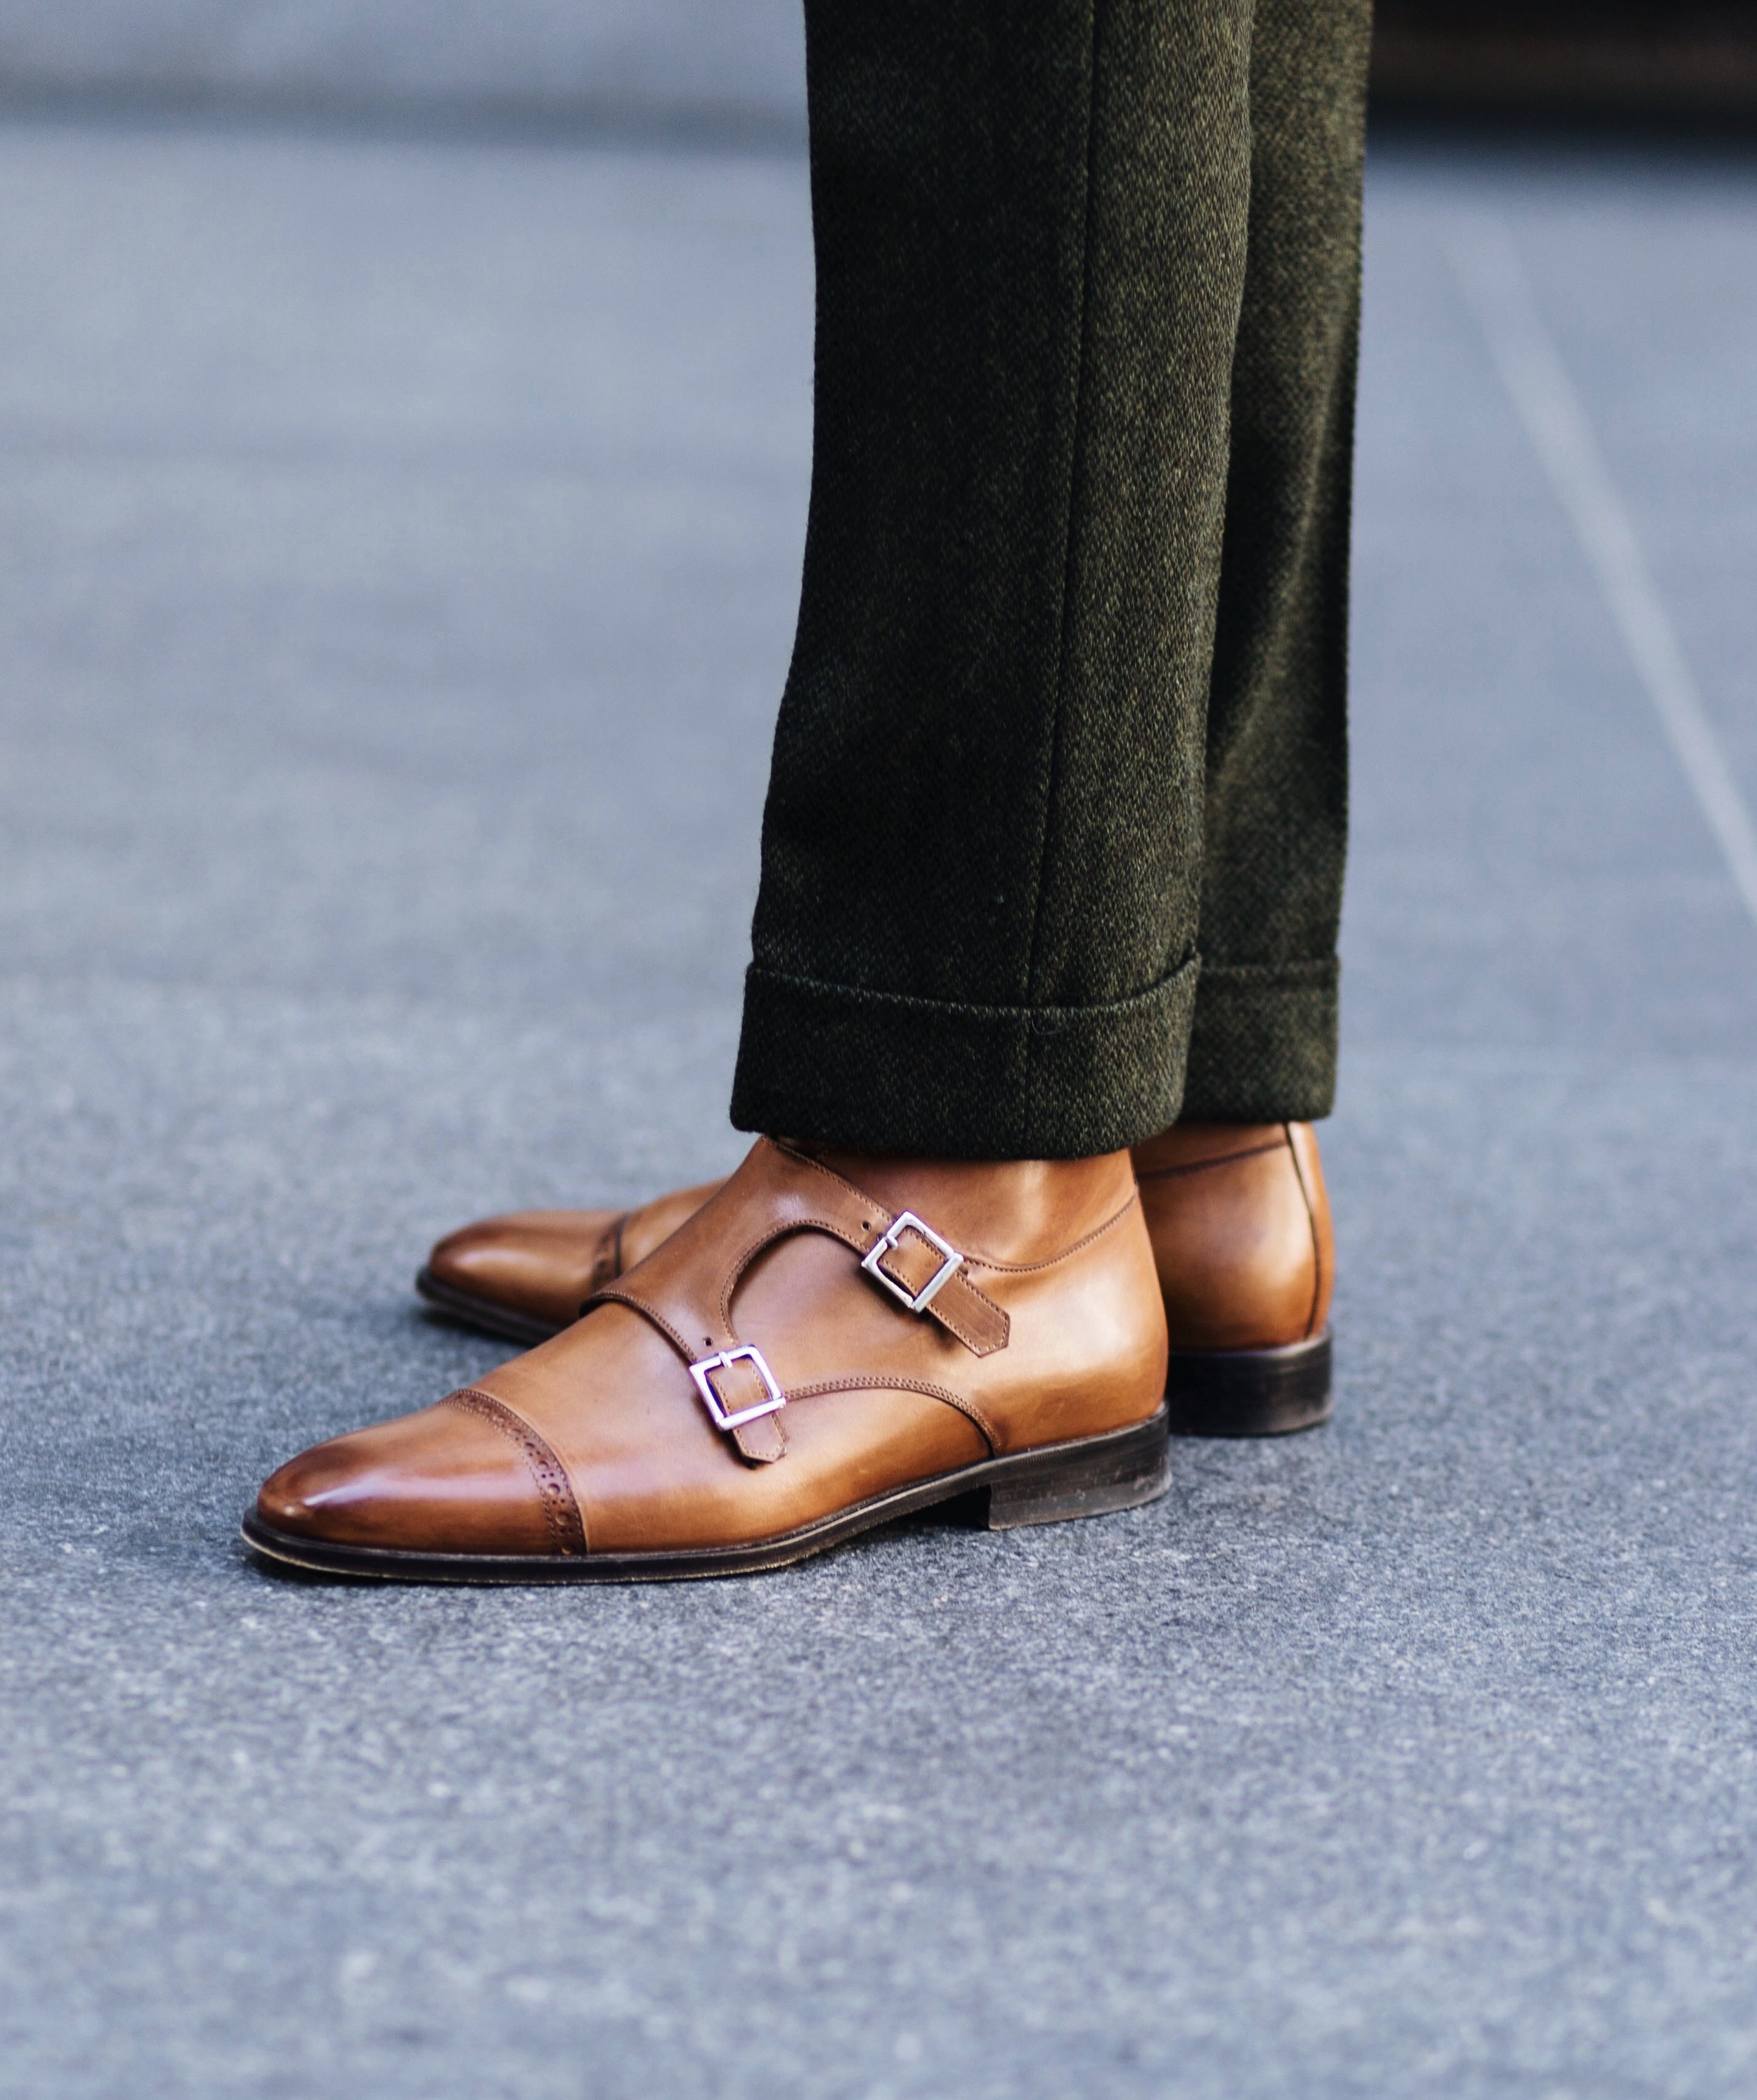 The Creative Gentleman wearing a pair of Heston double monk strap boots by Paul Evans NY and green tweed trousers from J. Crew. The Creative Gentleman styled the Heston Boot by Paul Evans NY as part of collaboration.